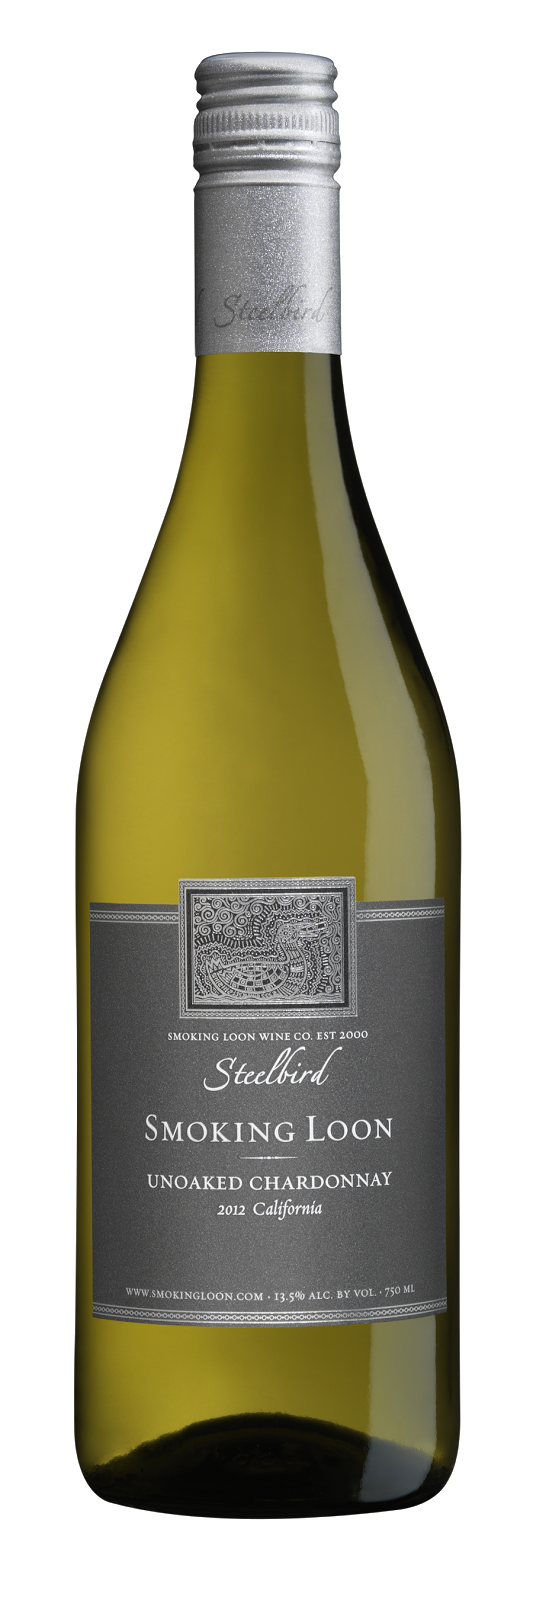 bottle of Smoking Loon Steelbird Chardonnay, 2012